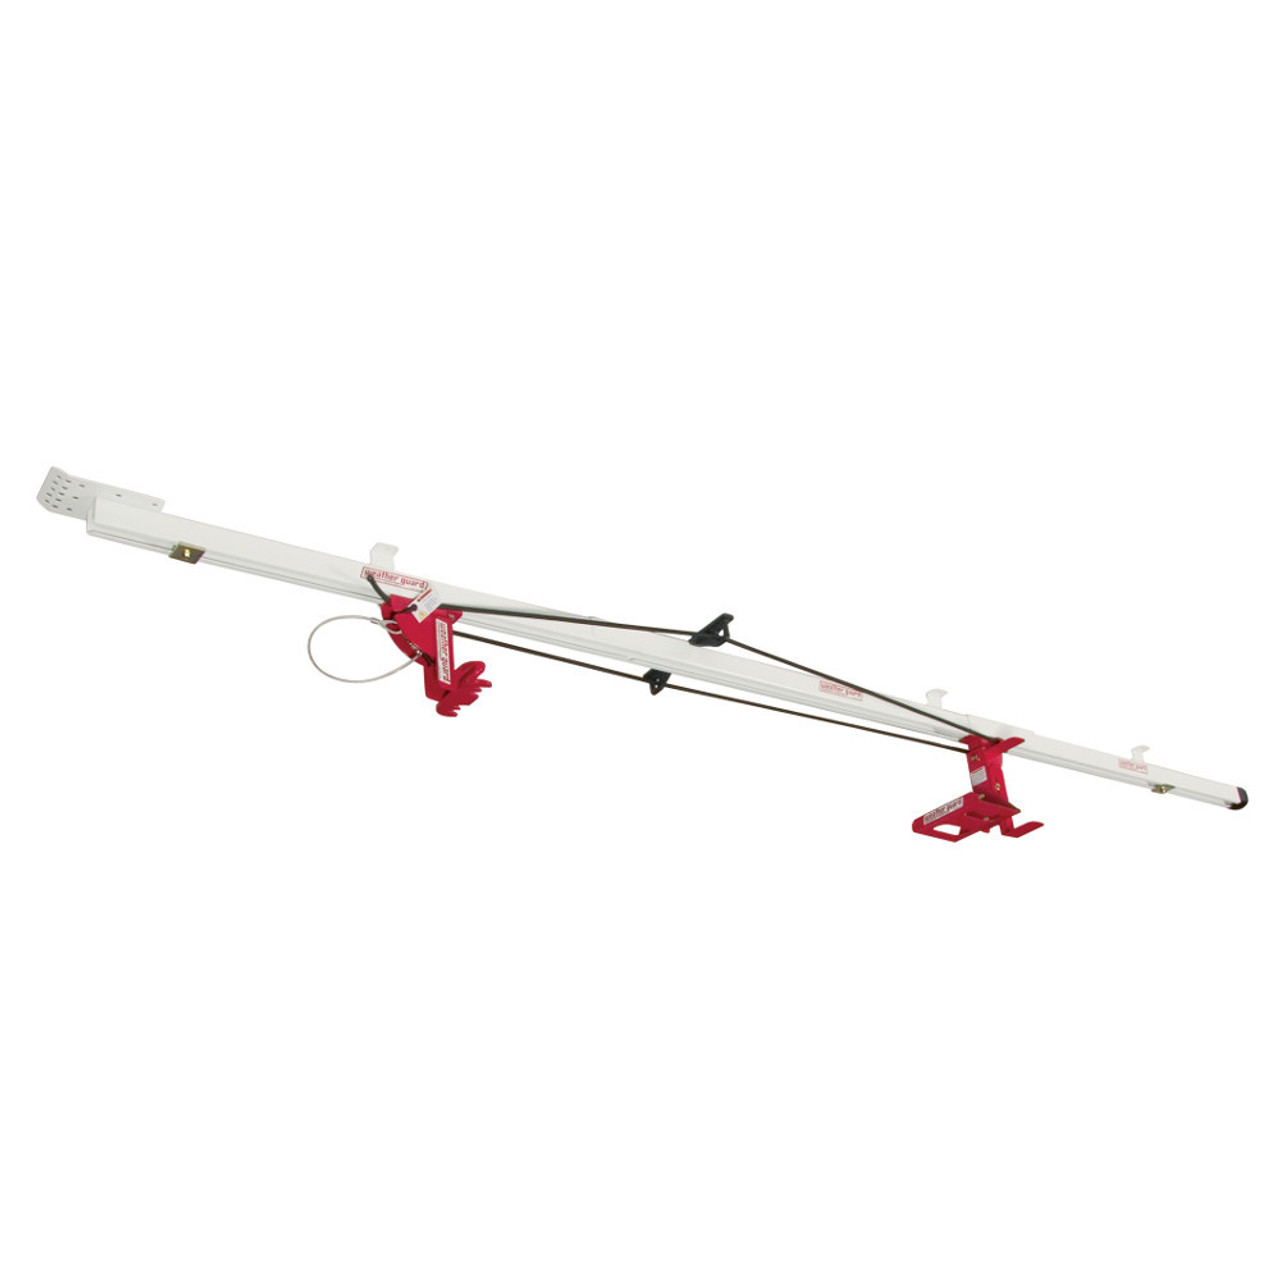 "Promaster - High Roof / 136"" WB 